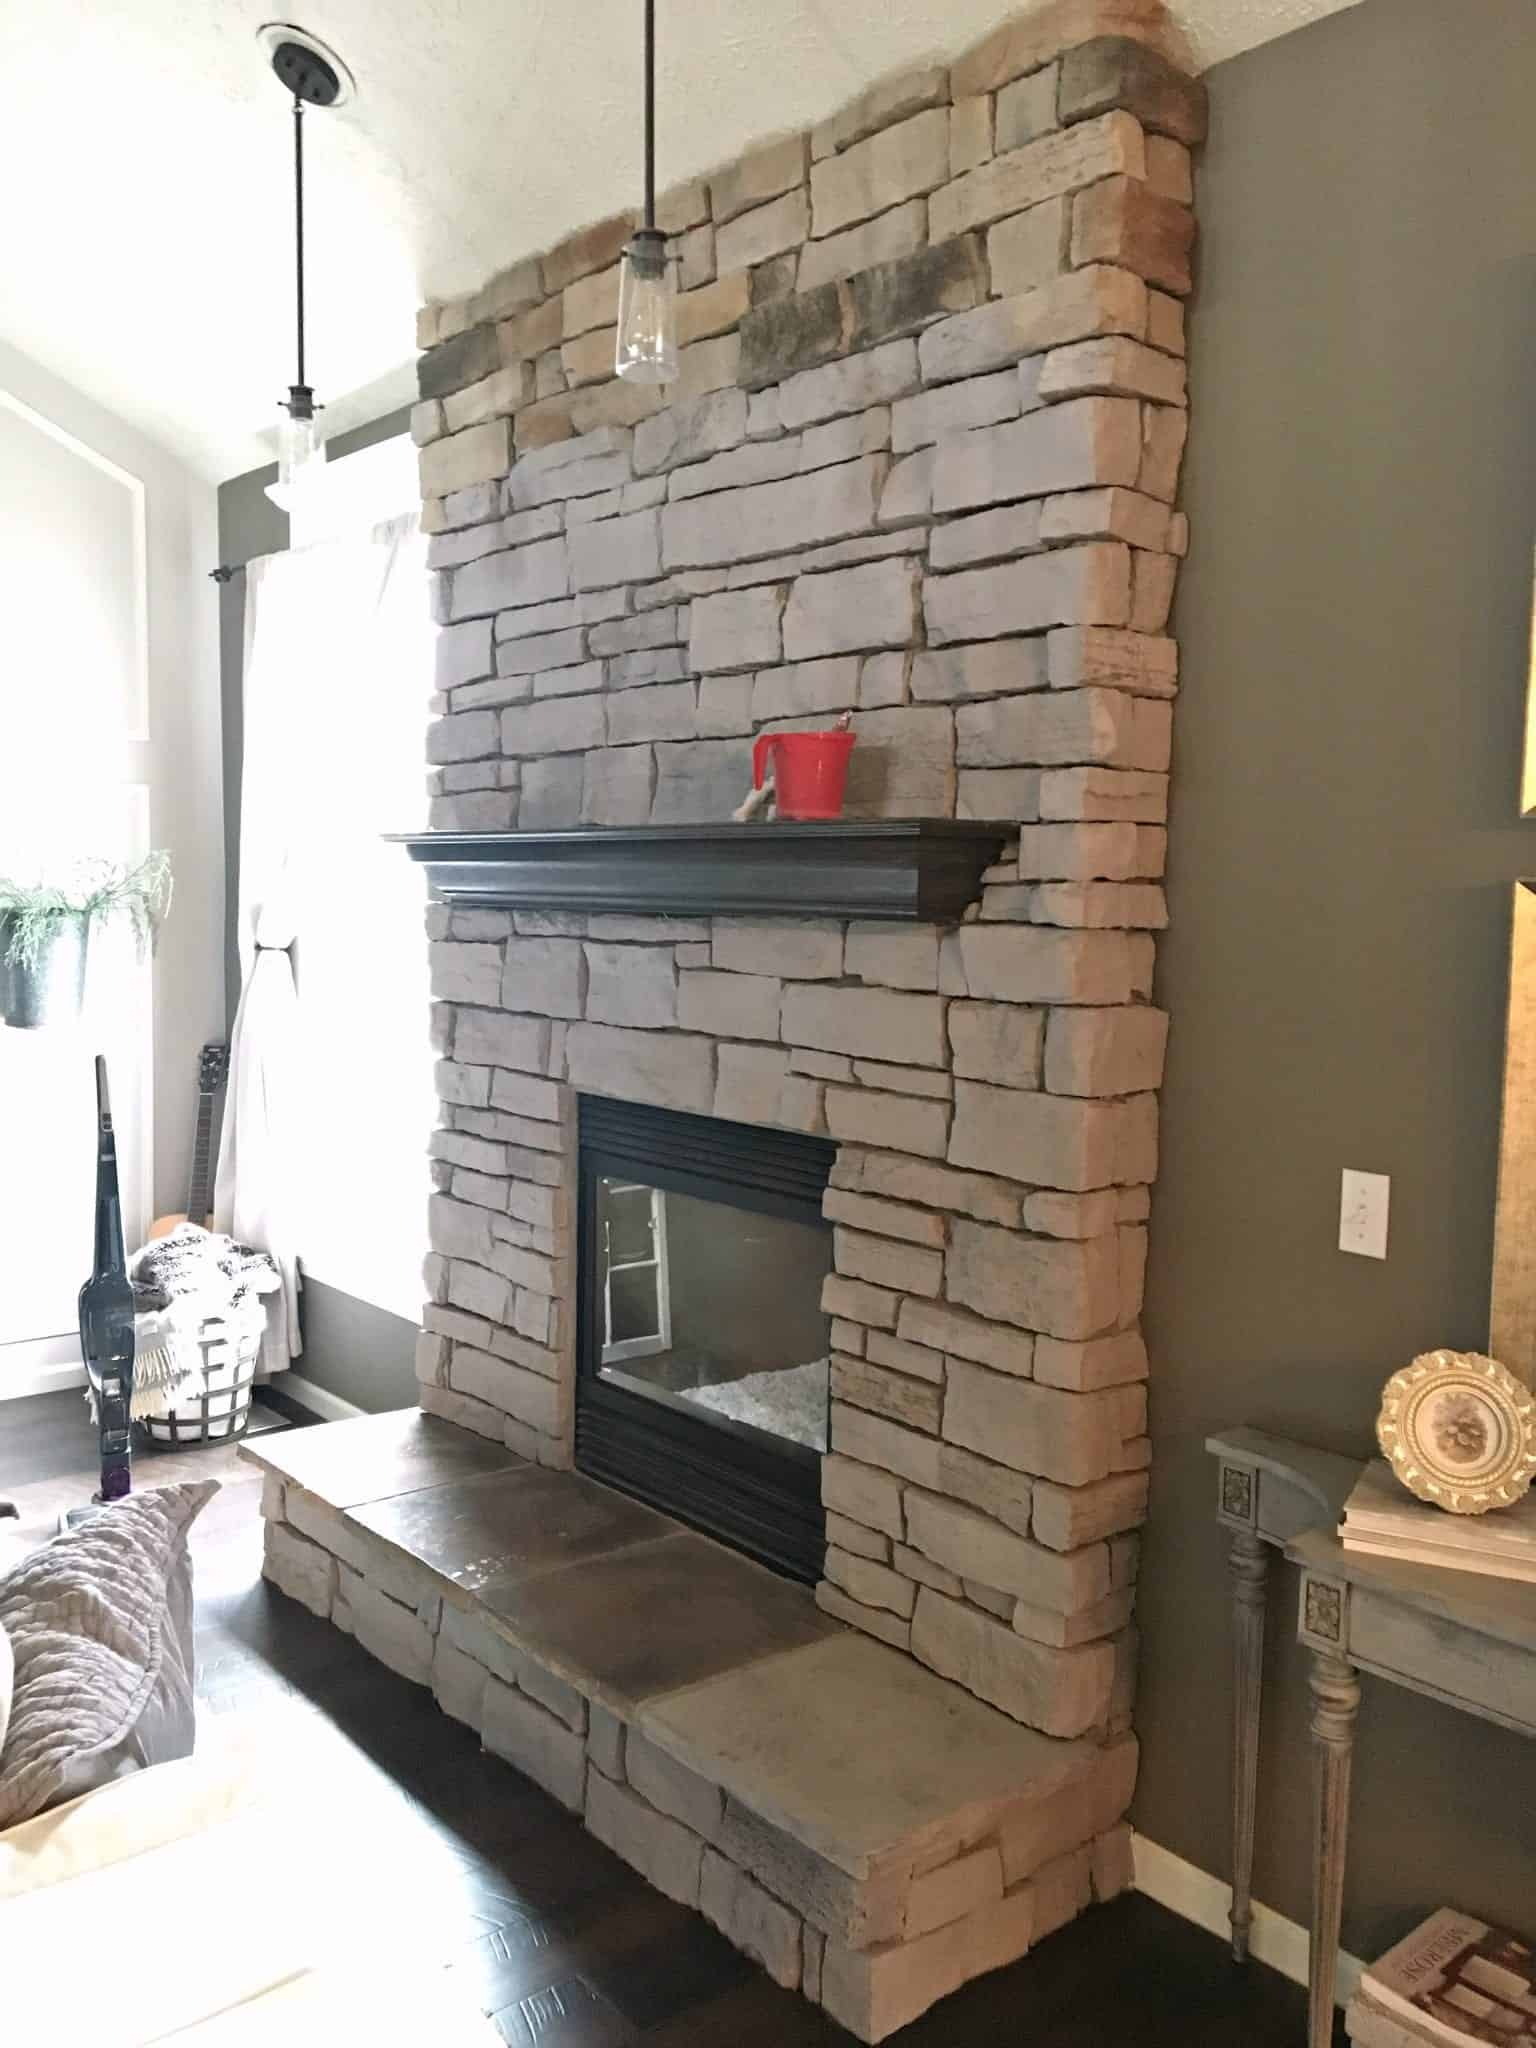 chimney block concrete constructors playa covered rey stone gives masonry paver pacificland a contractor living home the fireplace s modern room portfolio theme del